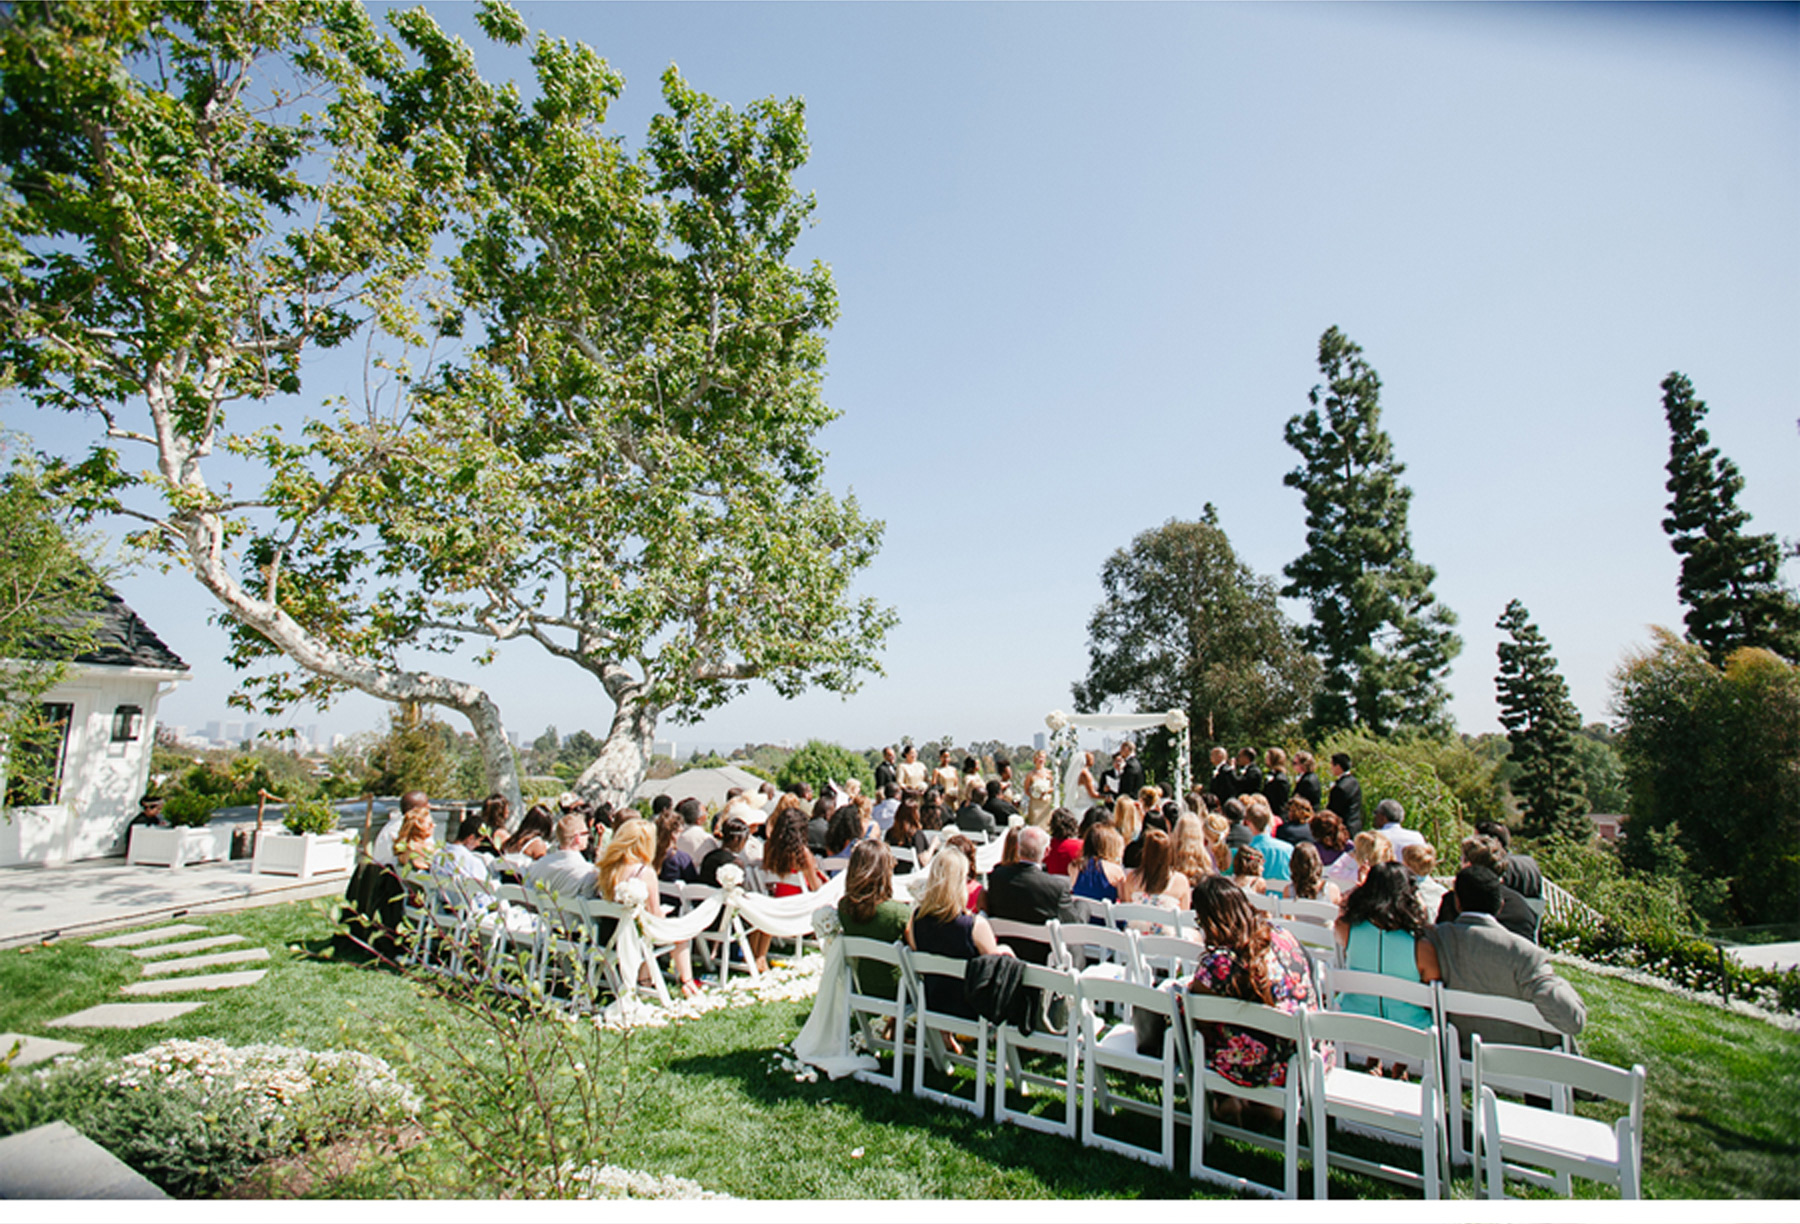 Wedding Guests Enjoy the Outdoor Ceremony on White Chairs